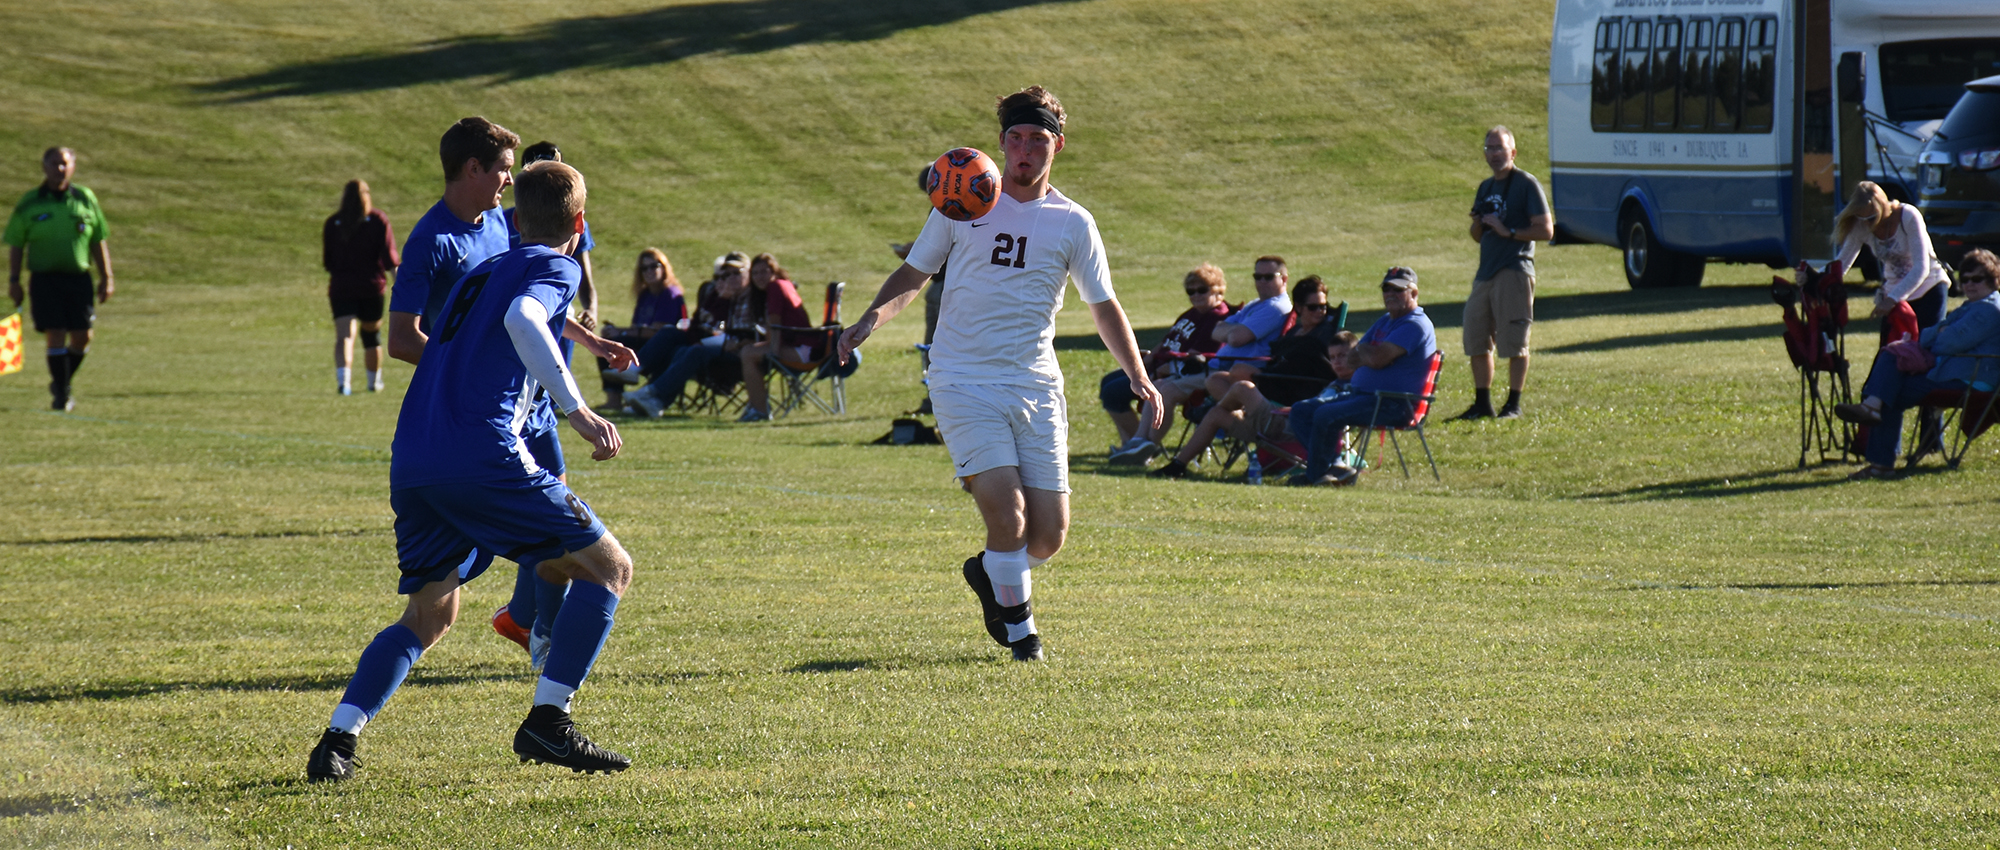 Red Devils Fall at MacMurray, 5-1